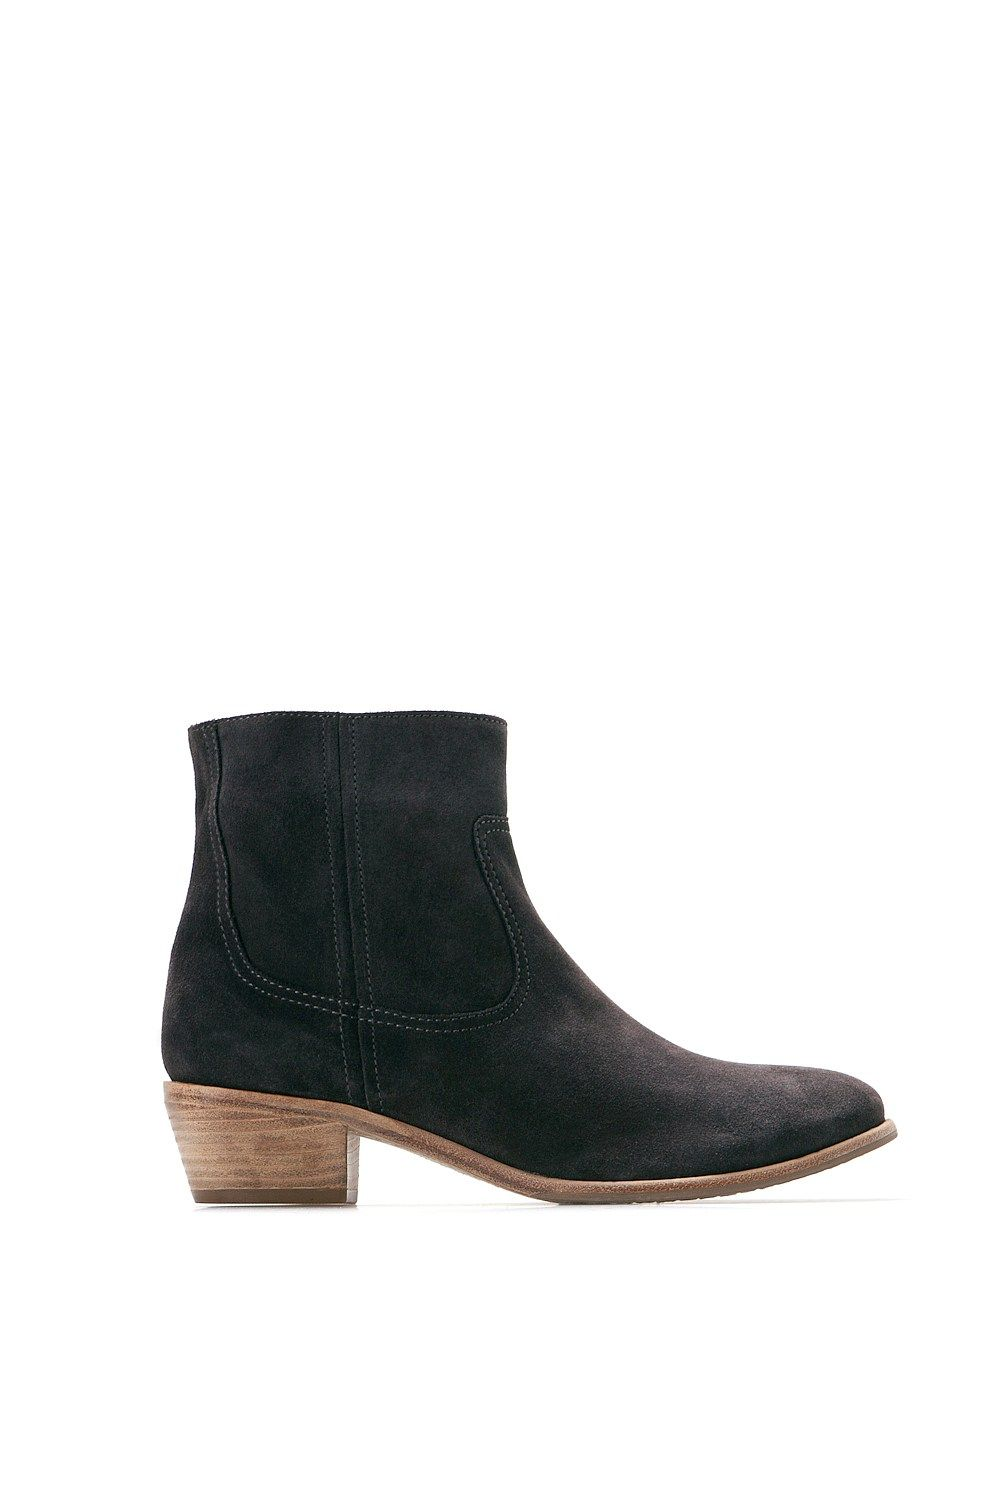 64f0ded392a Country Road - Women s Shoes   Footwear Online - Brooklyn Ankle Boot ...